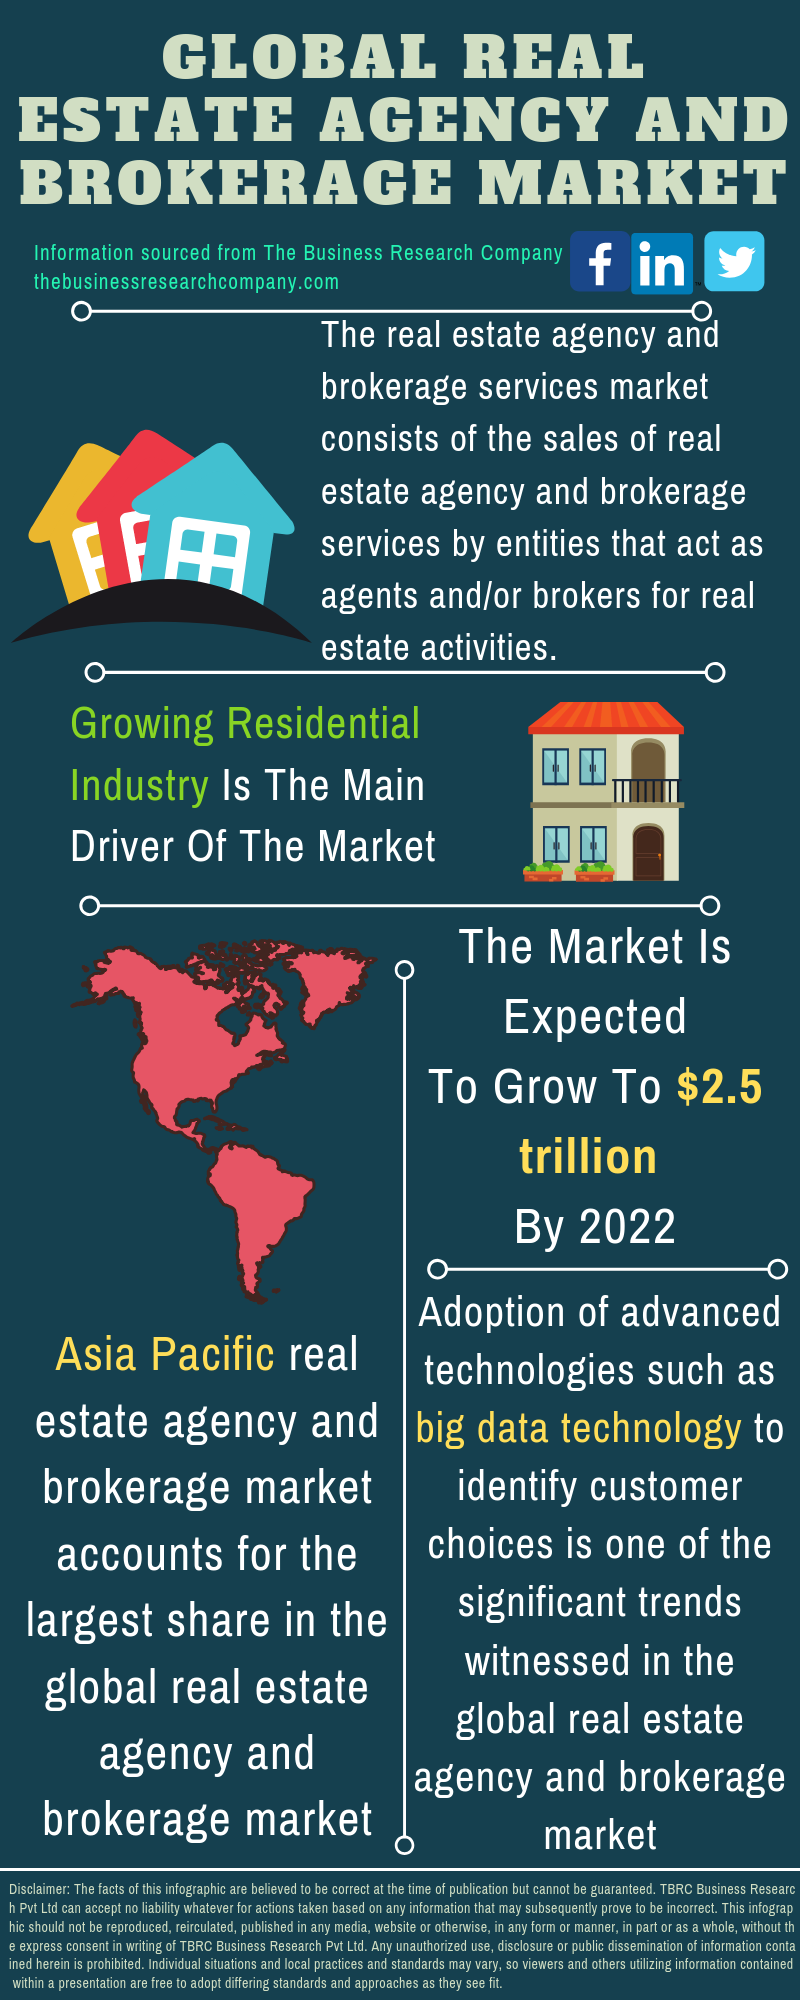 Real Estate Agency and Brokerage Market